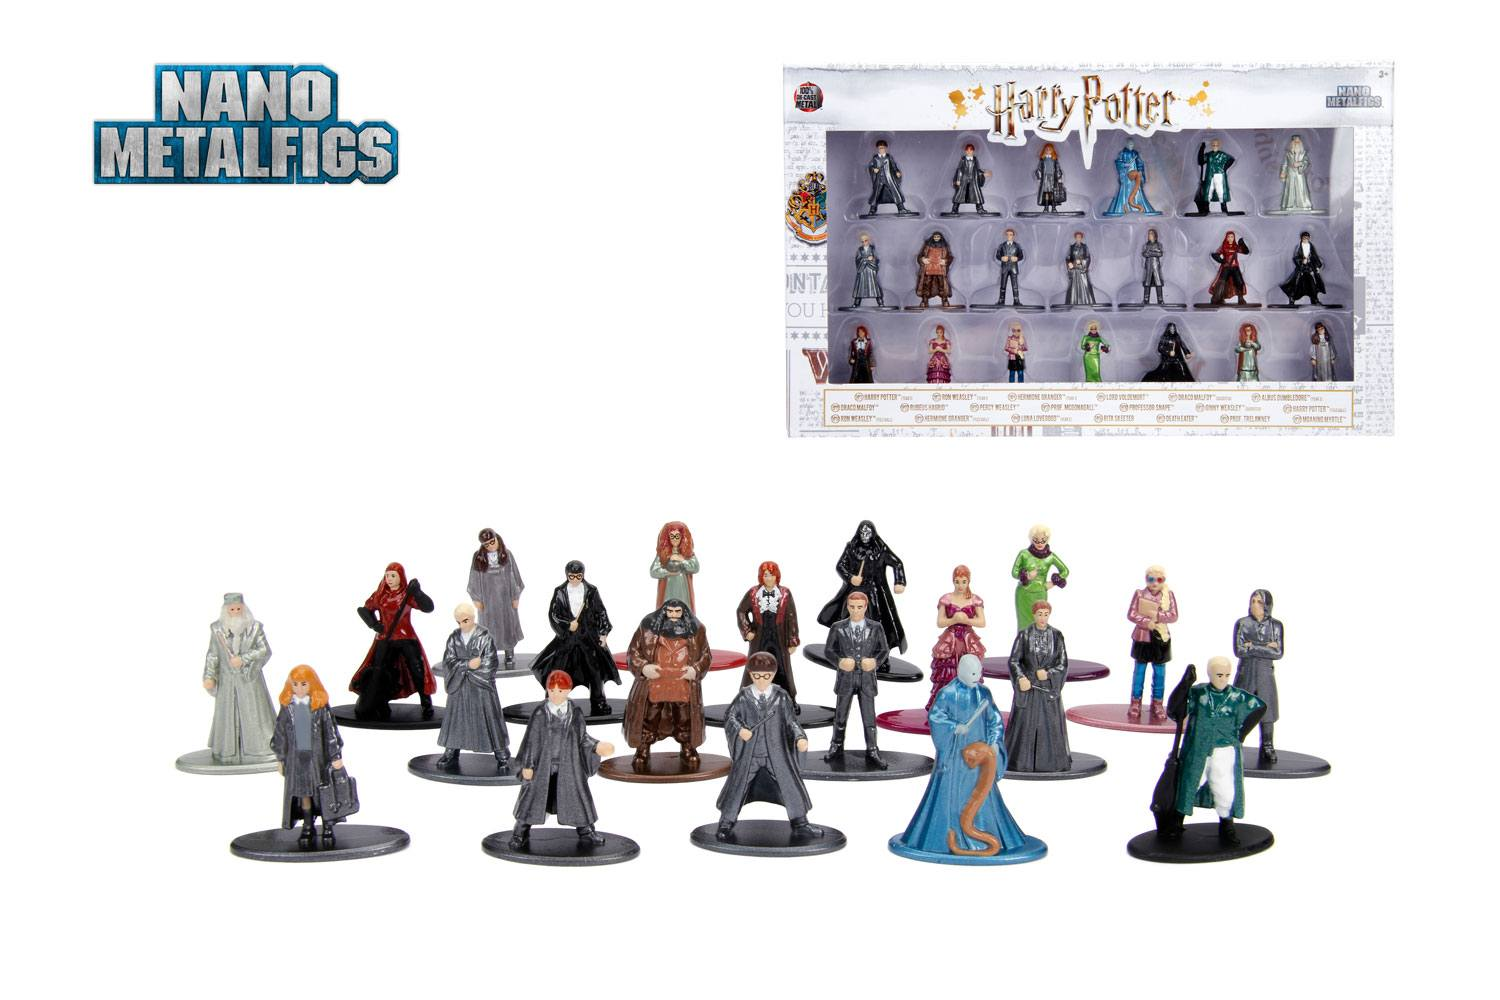 Harry Potter Nano Metalfigs Diecast Mini Figures 20-Pack Wave 3 4 cm